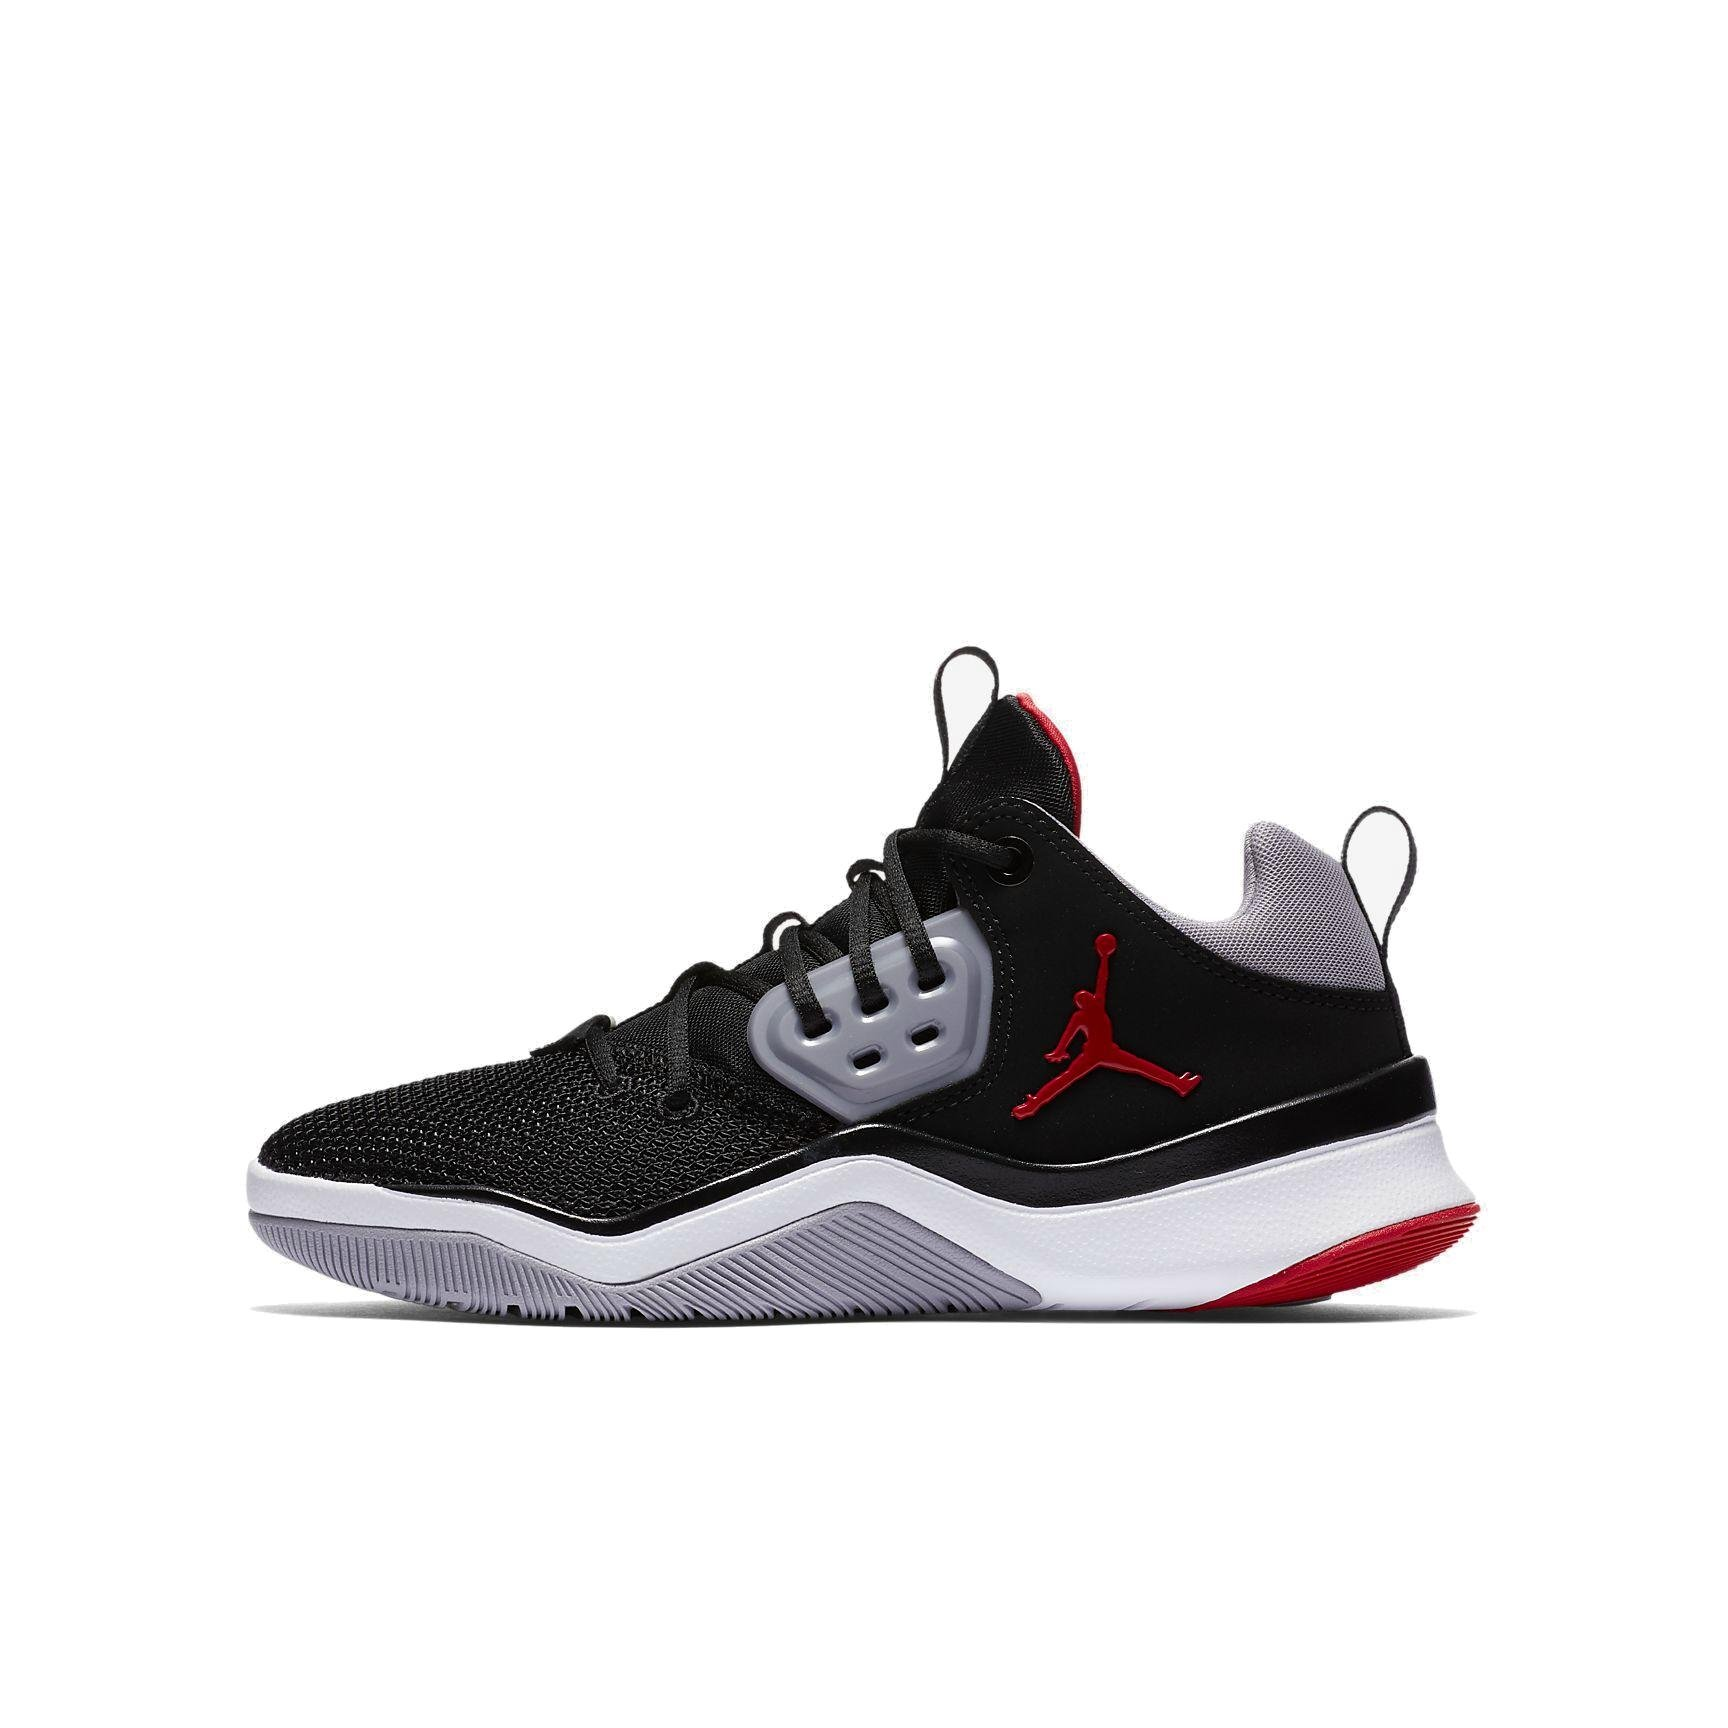 NIKE Jordan DNA (GS) Baby-Girls Fashion-Sneakers AO1540-001_6.5Y - Black/Gym RED-Cement Grey-White